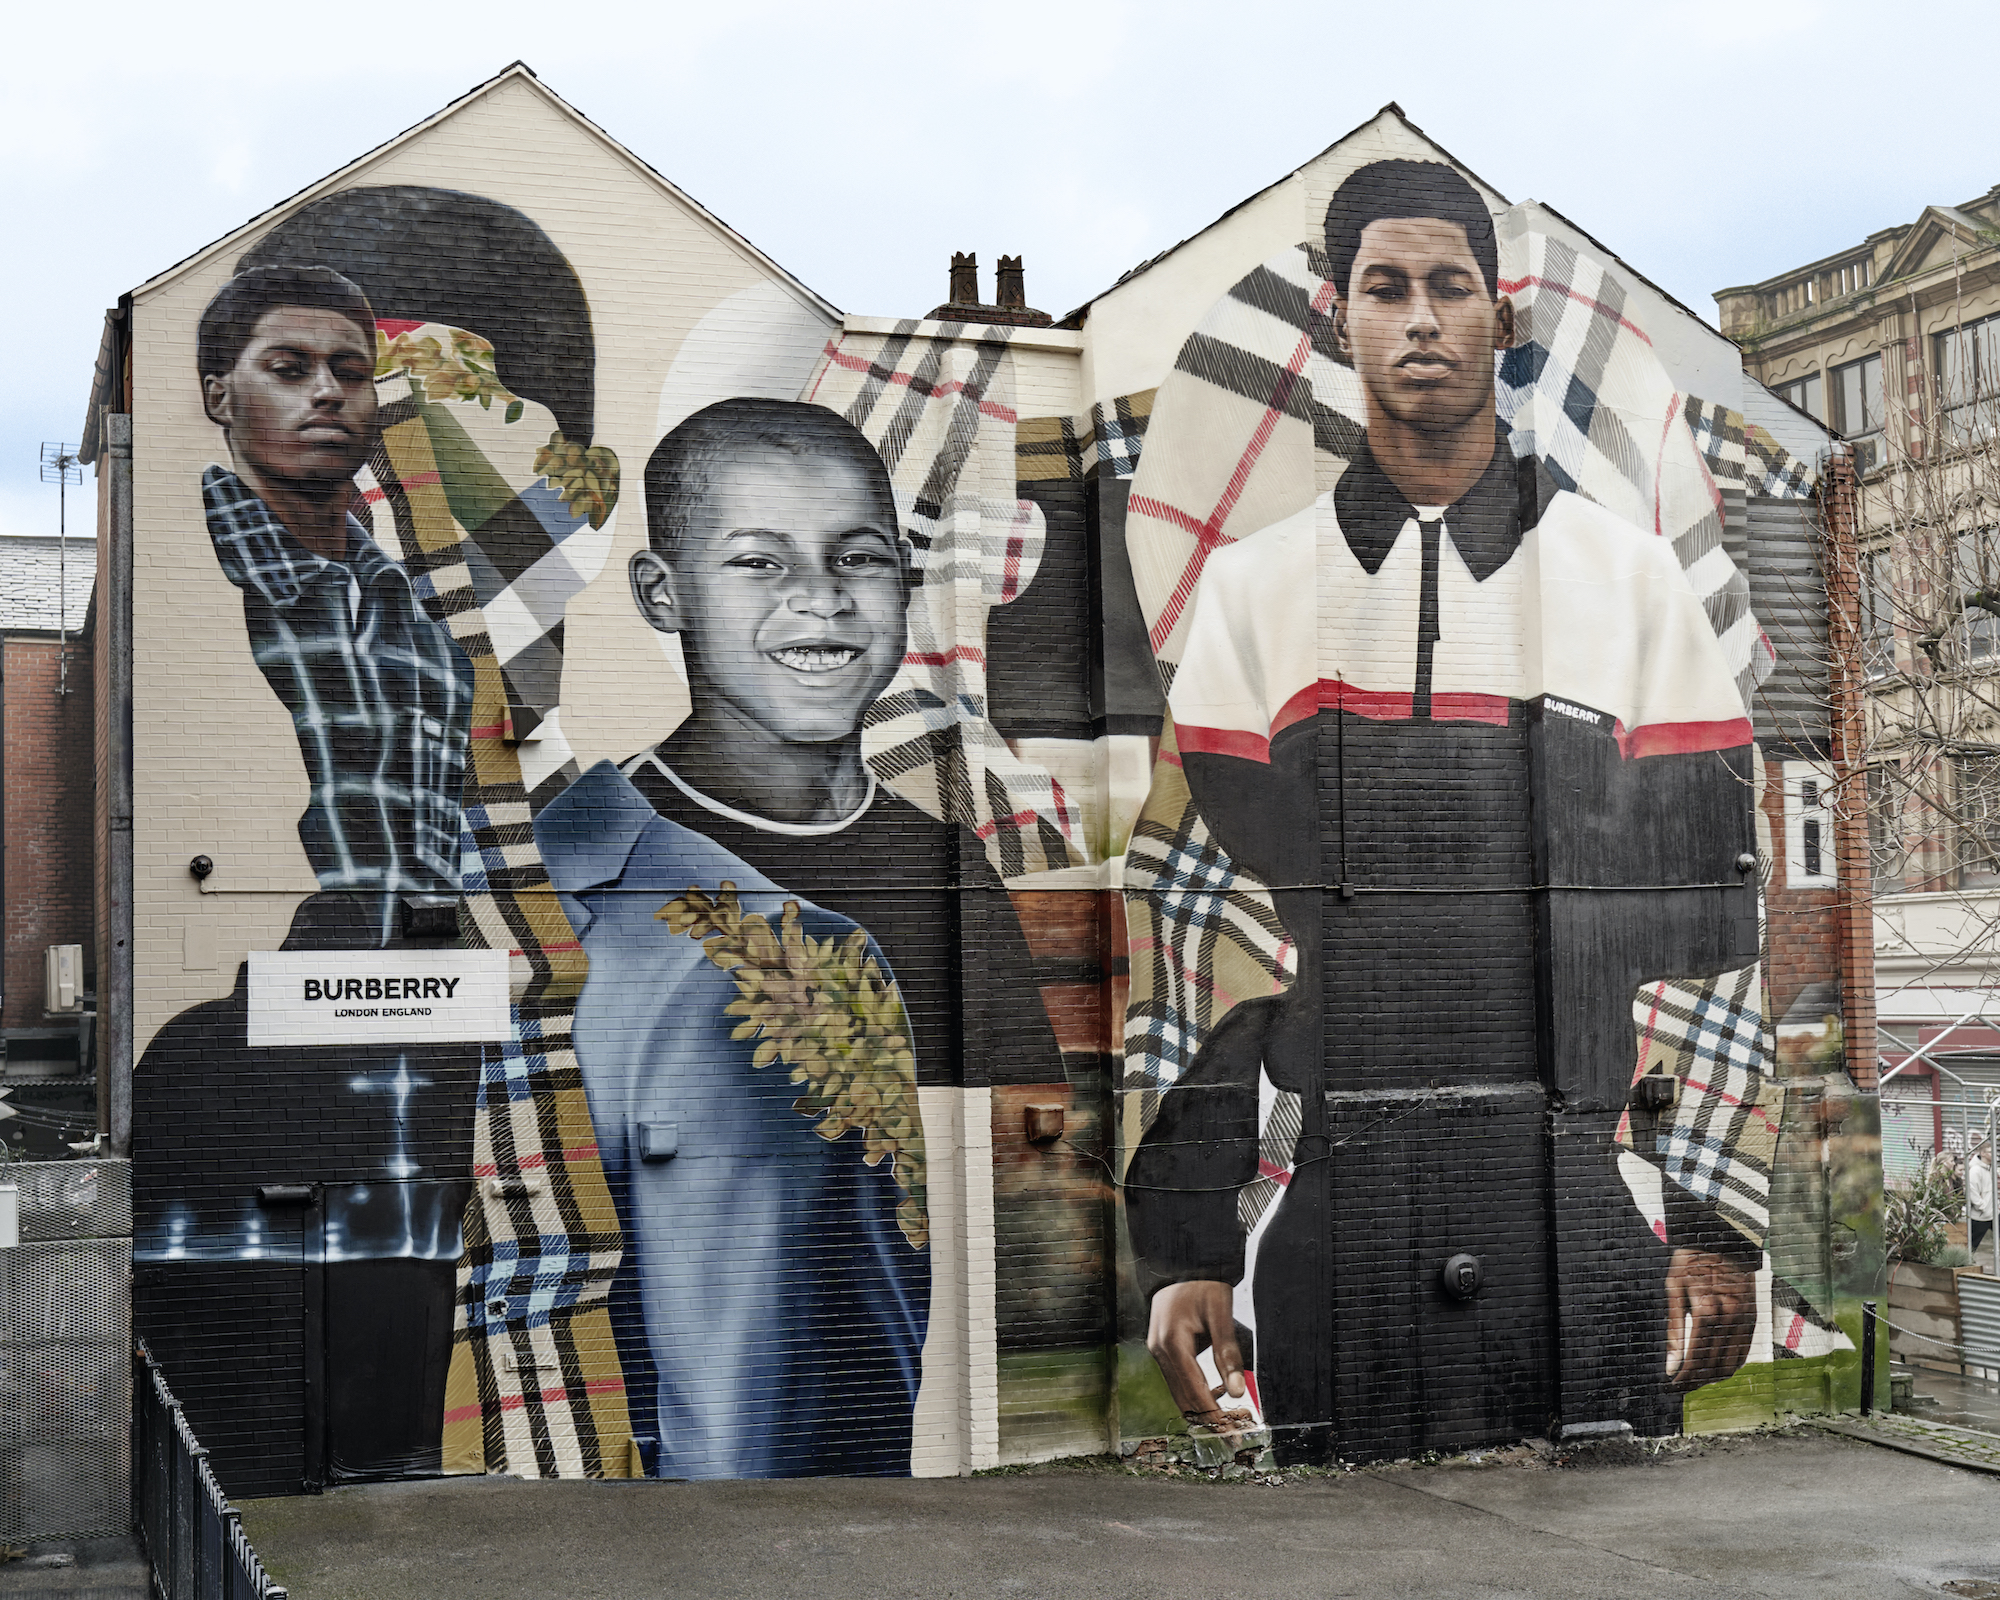 Mural images of Macus Rashford Manchester